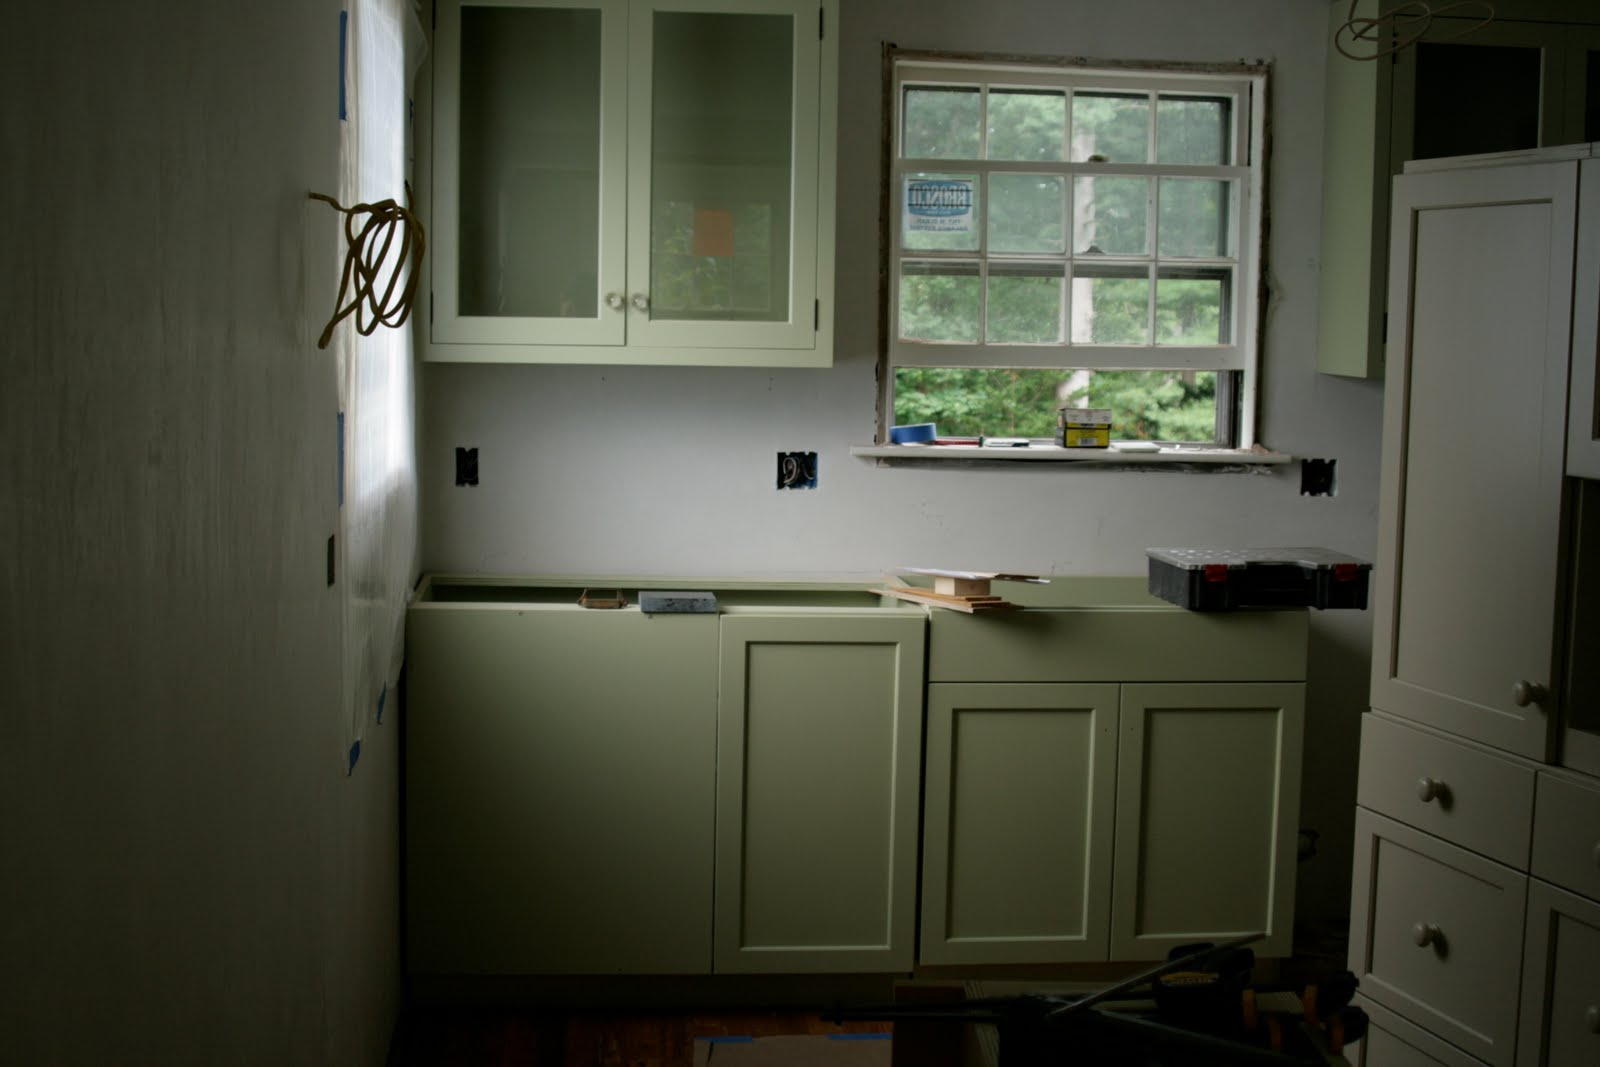 bluebonnet in beantown farrow ball cooking apple green cabinets